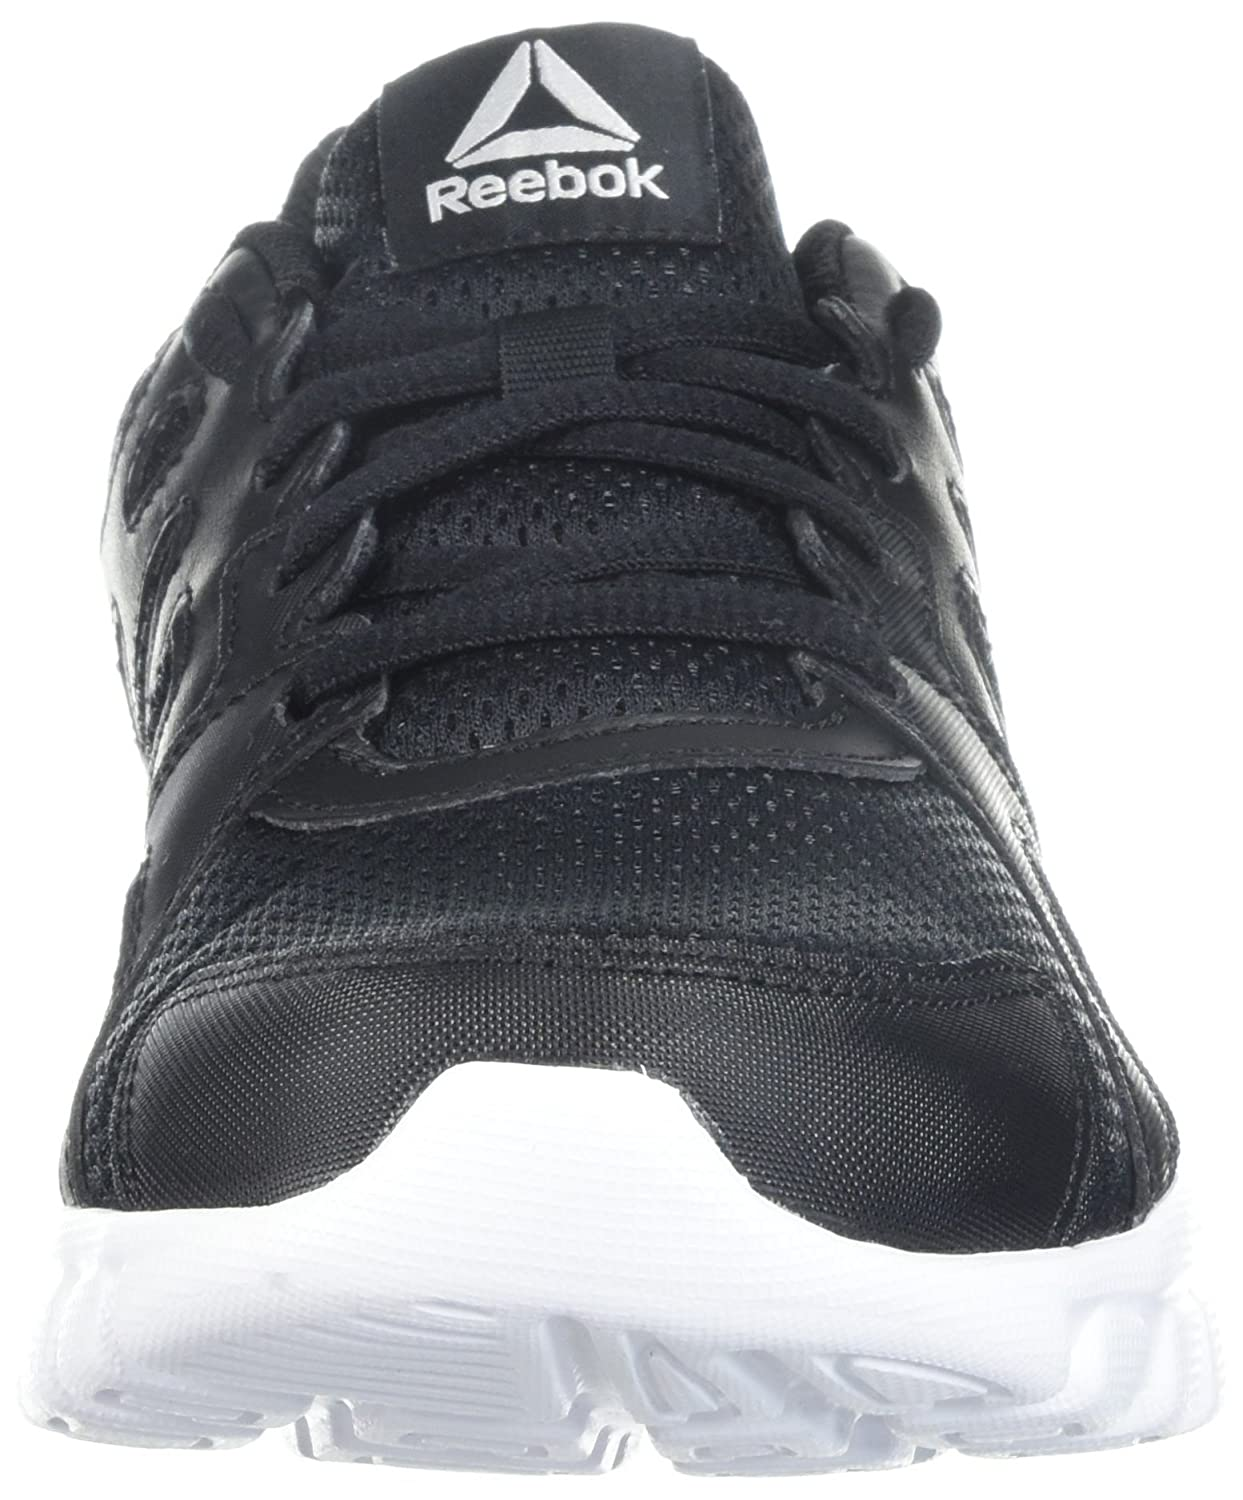 8fede539afc Reebok Trainfusion Nine 3.0 Cross Trainer para mujeres Negro   Blanco    Plata